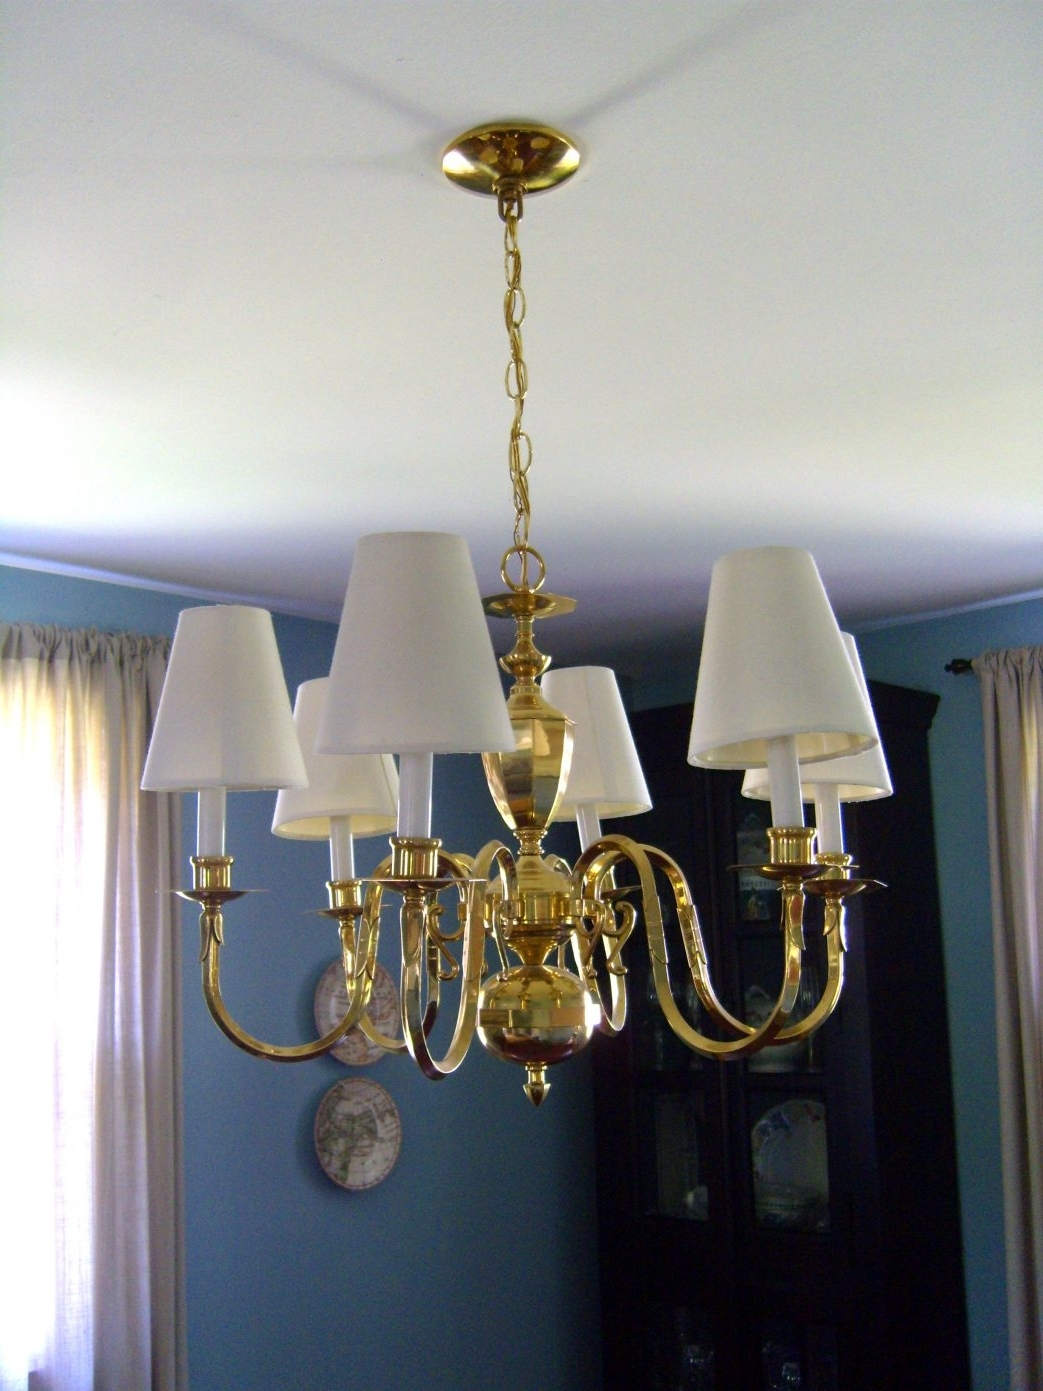 2018 Drum Lamp Shades For Chandeliers Large Chandelier Better Lamps Within Lampshade Chandeliers (View 1 of 20)